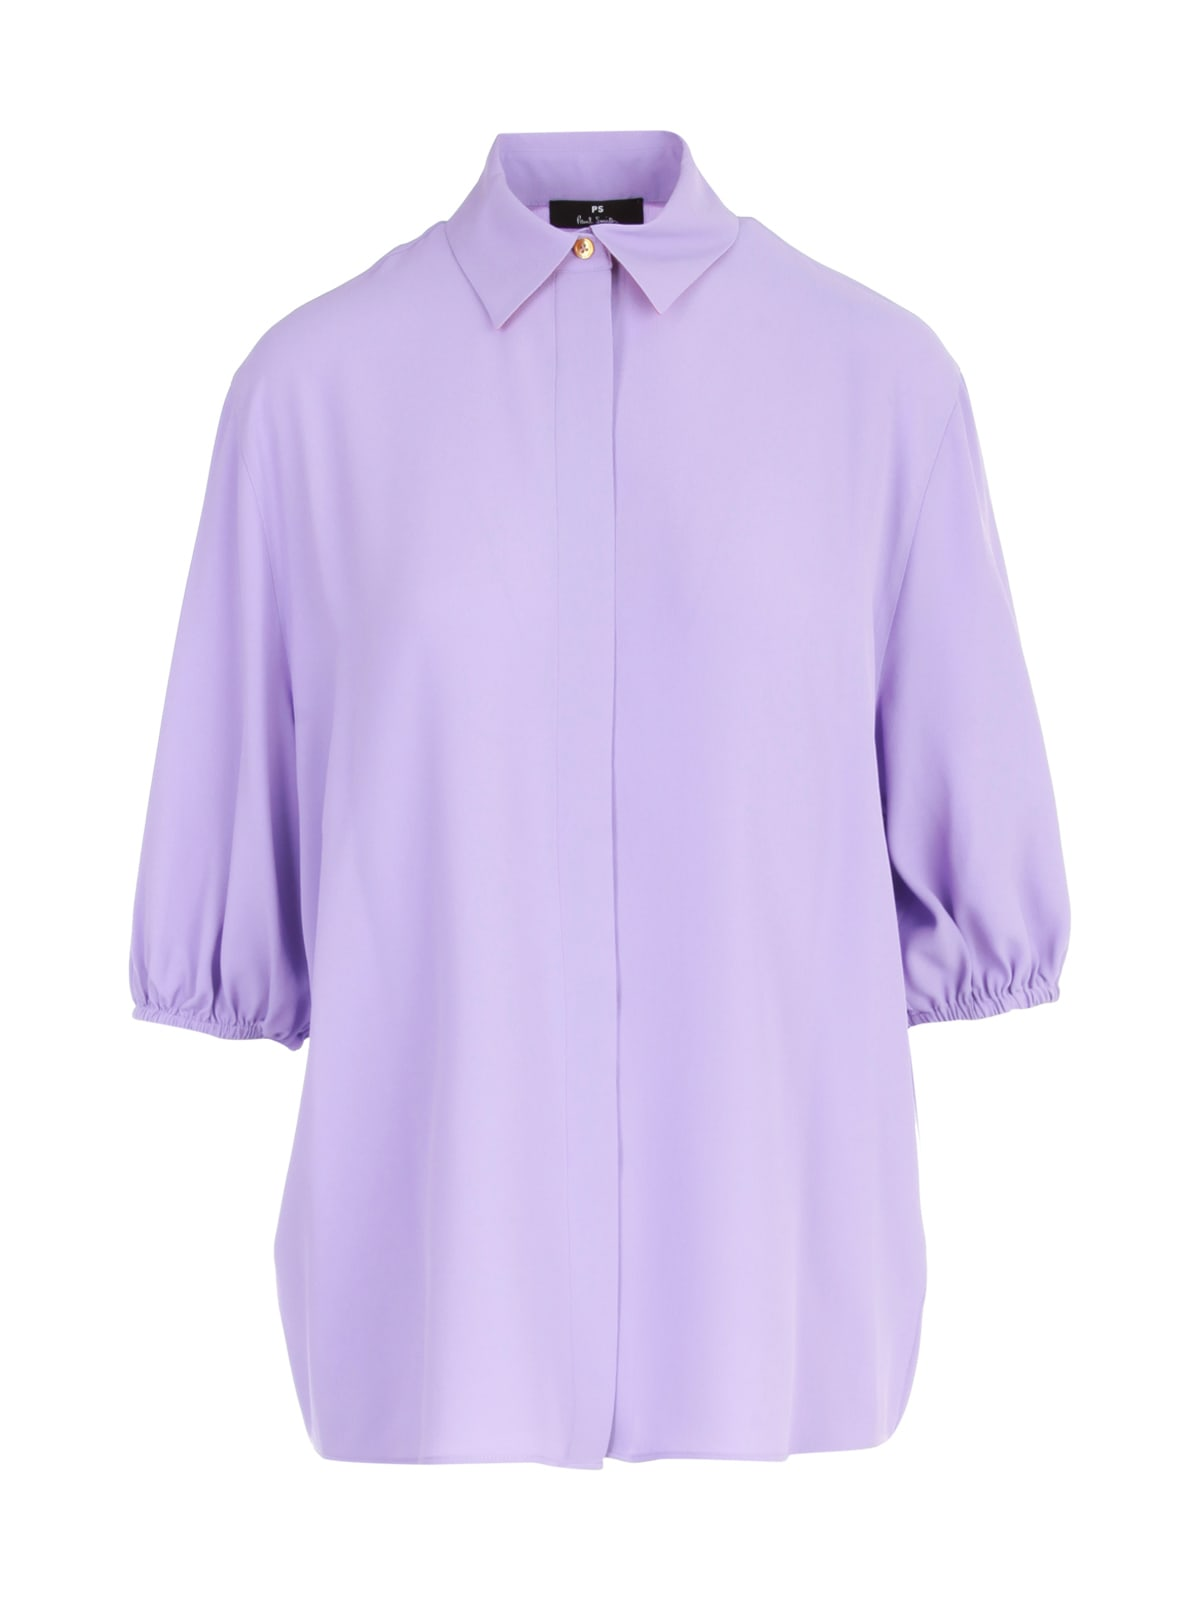 PS by Paul Smith Oversized 3/4s Shirt